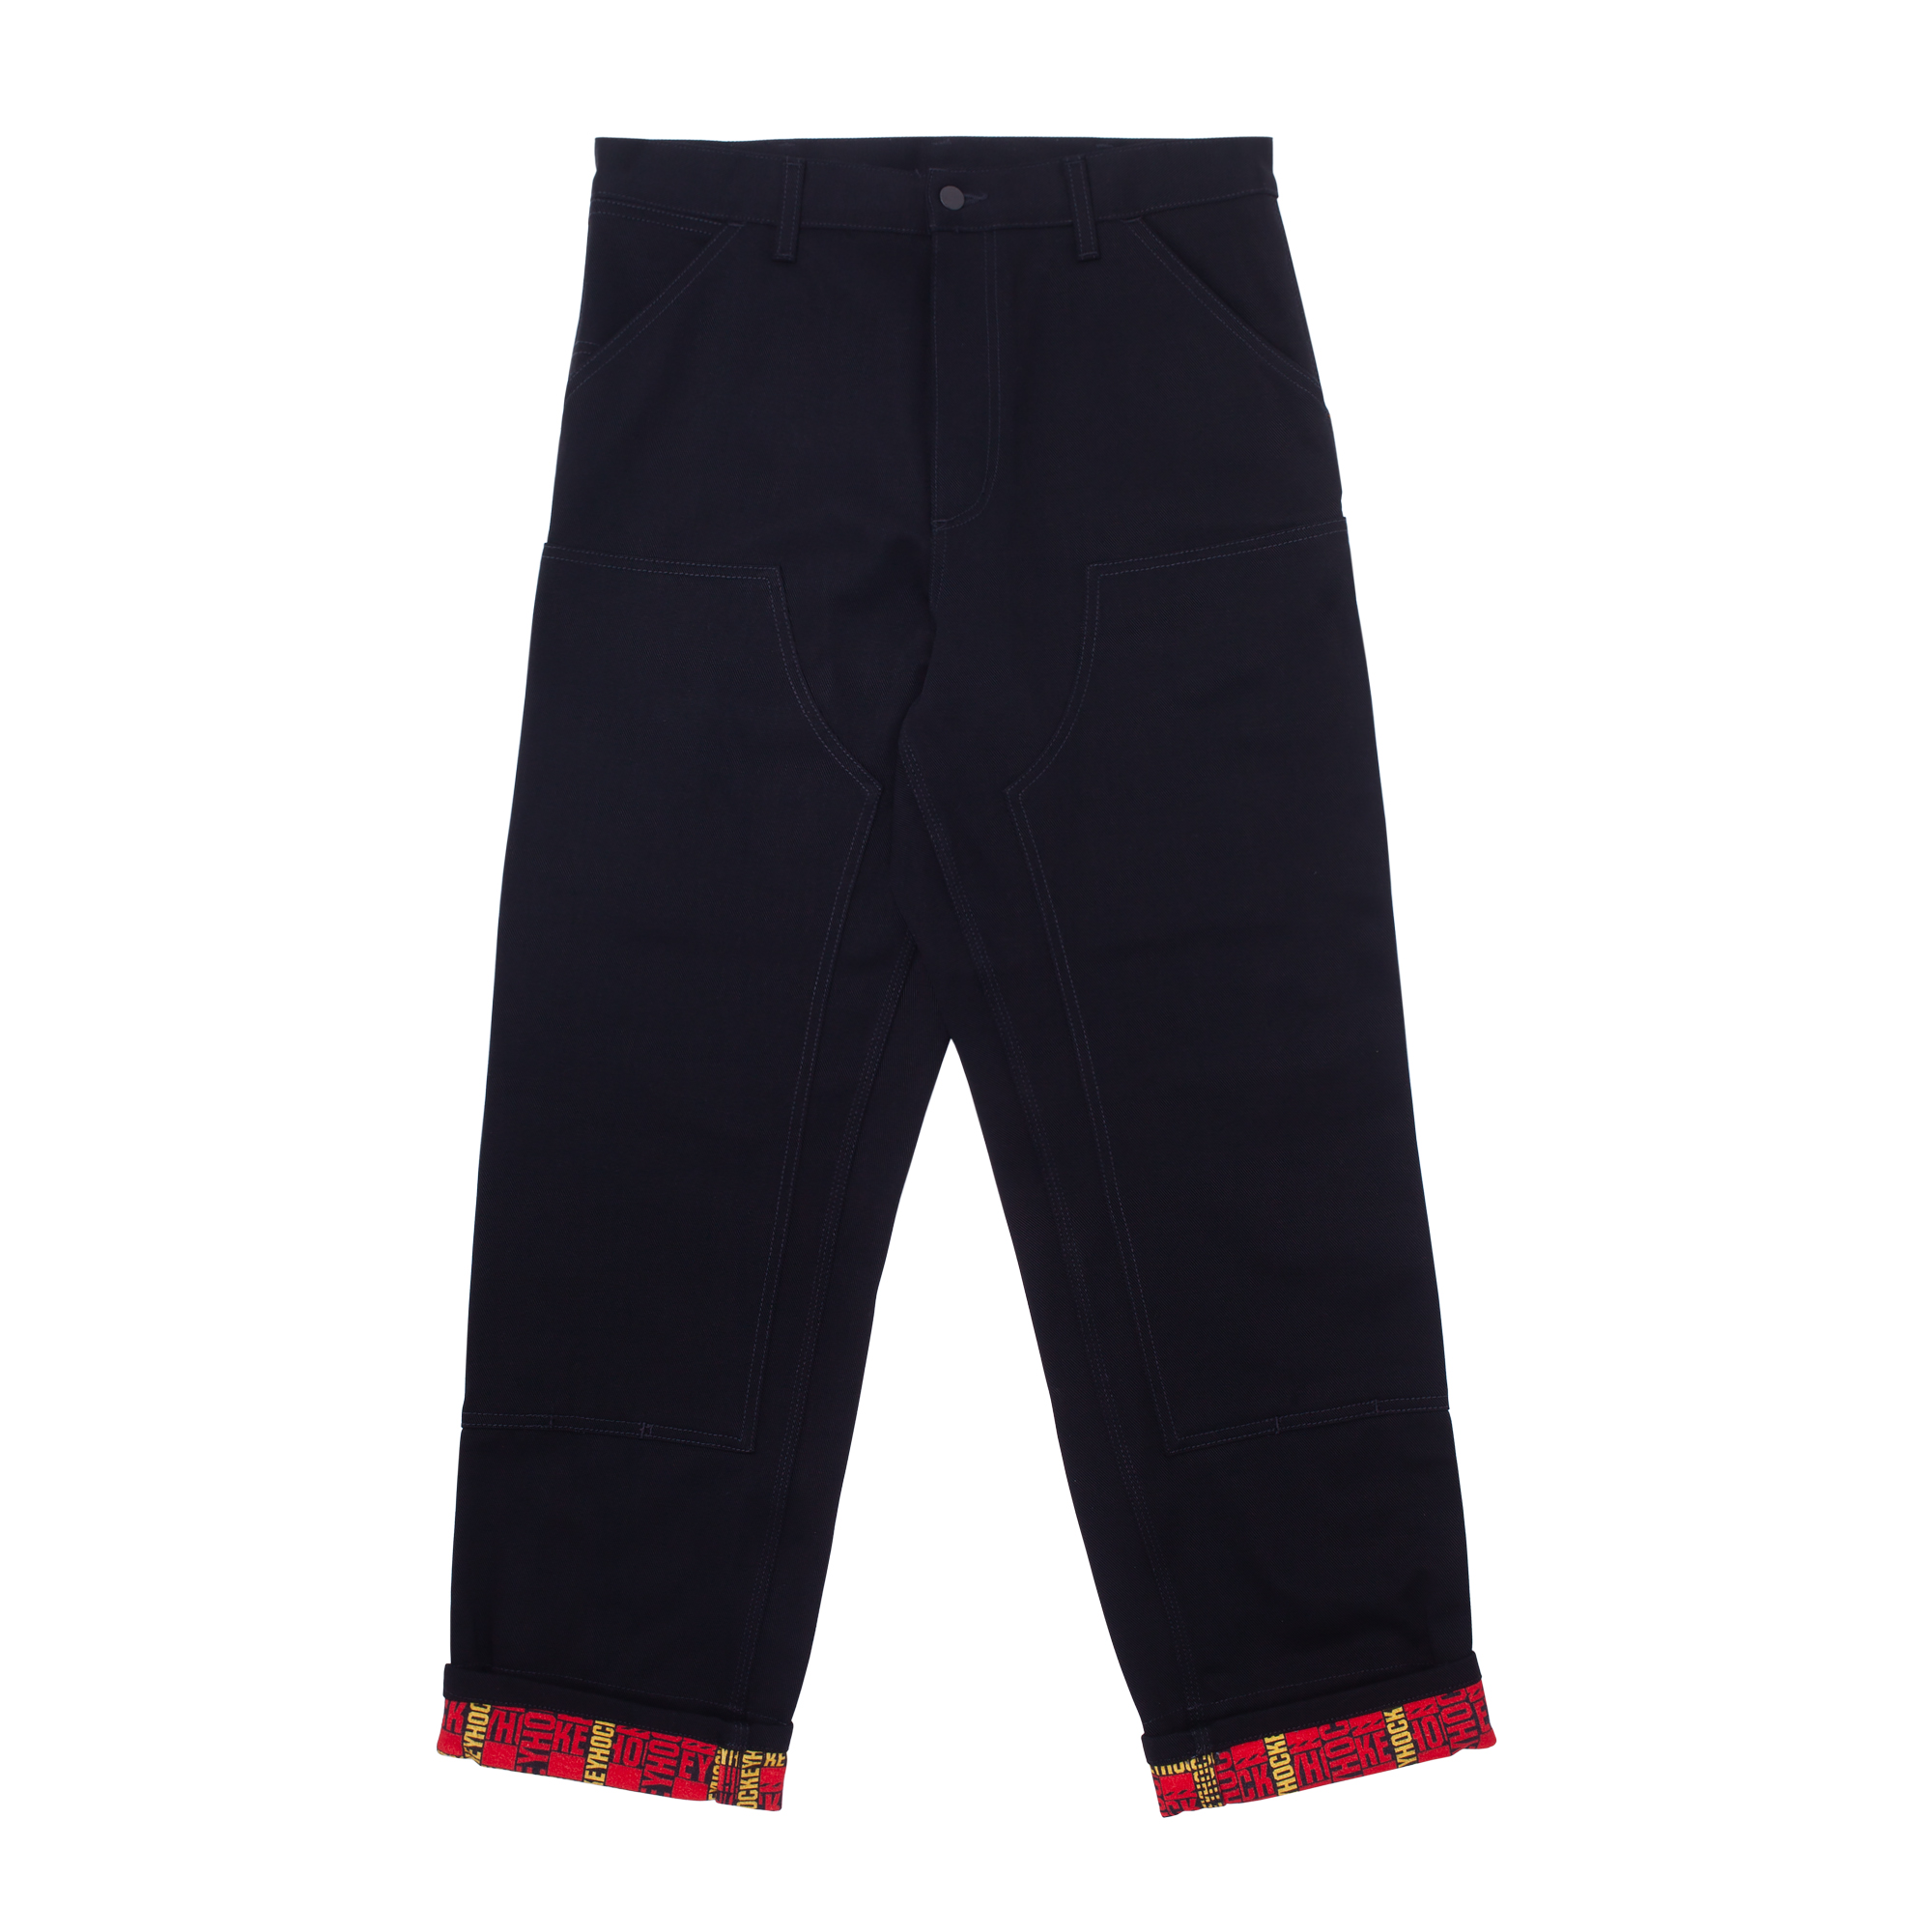 2021_HockeyCarhartt_Collaboration_GraphicDetail_Apparel_WorkPant_Black_Front